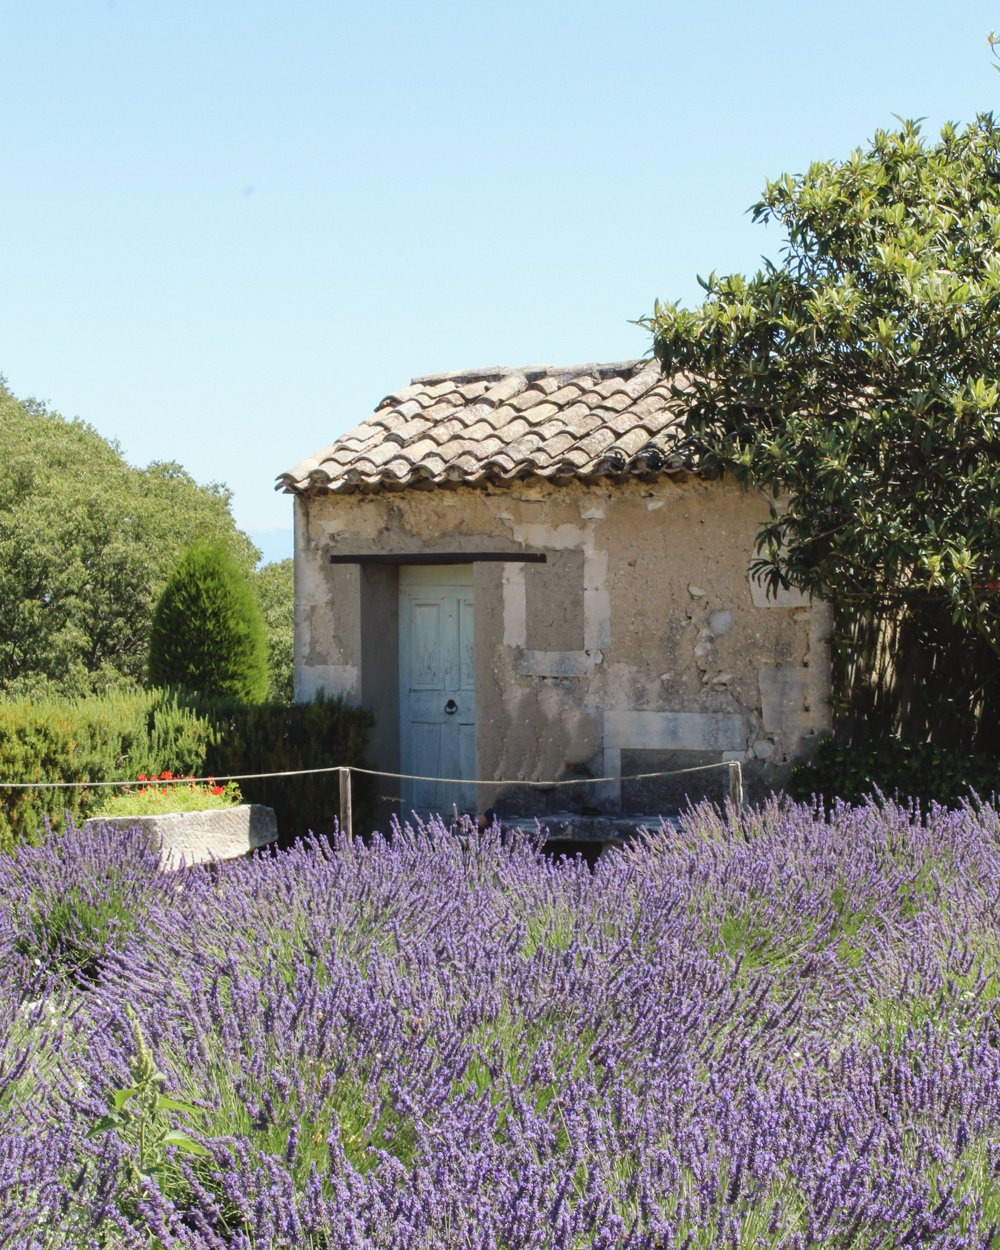 3 Day Provence Itinerary- Saint Remy